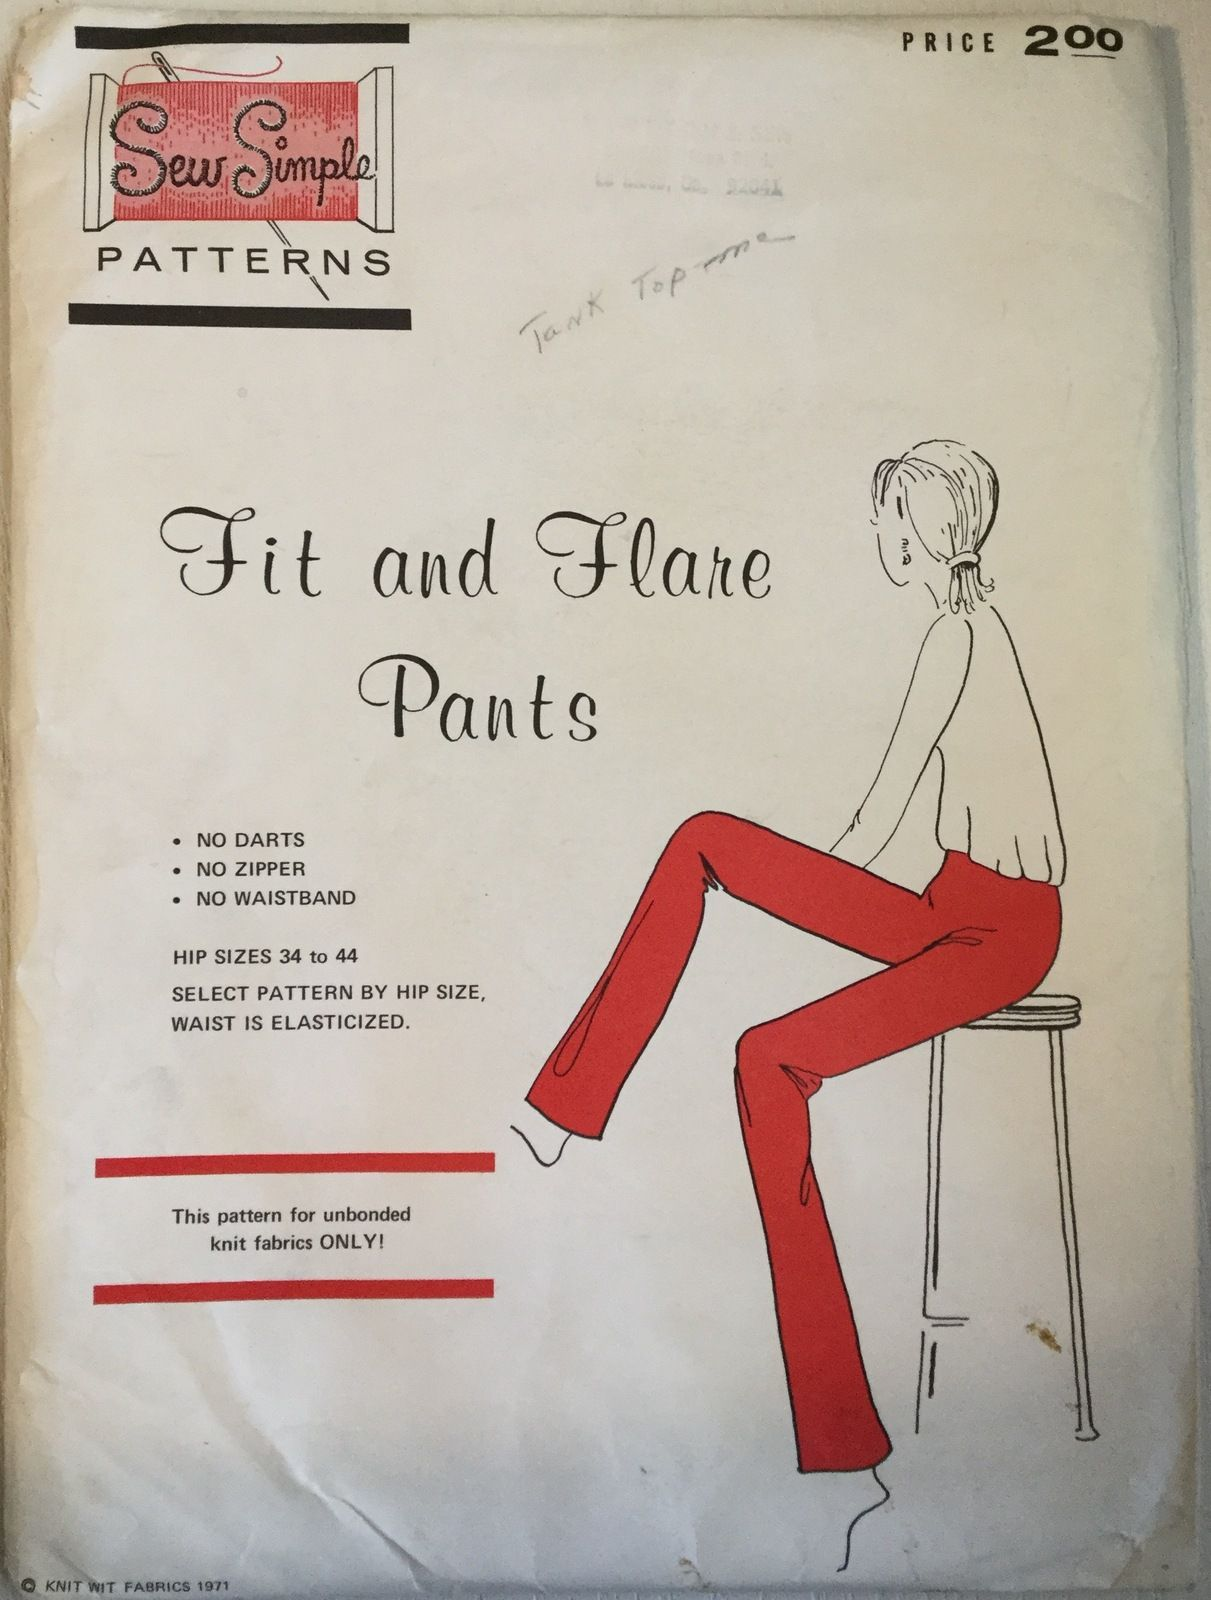 Sew simple patterns fit and flare pants for knits only hips 34 44 sew simple patterns fit and flare pants for knits only hips 34 44 uncut jeuxipadfo Images